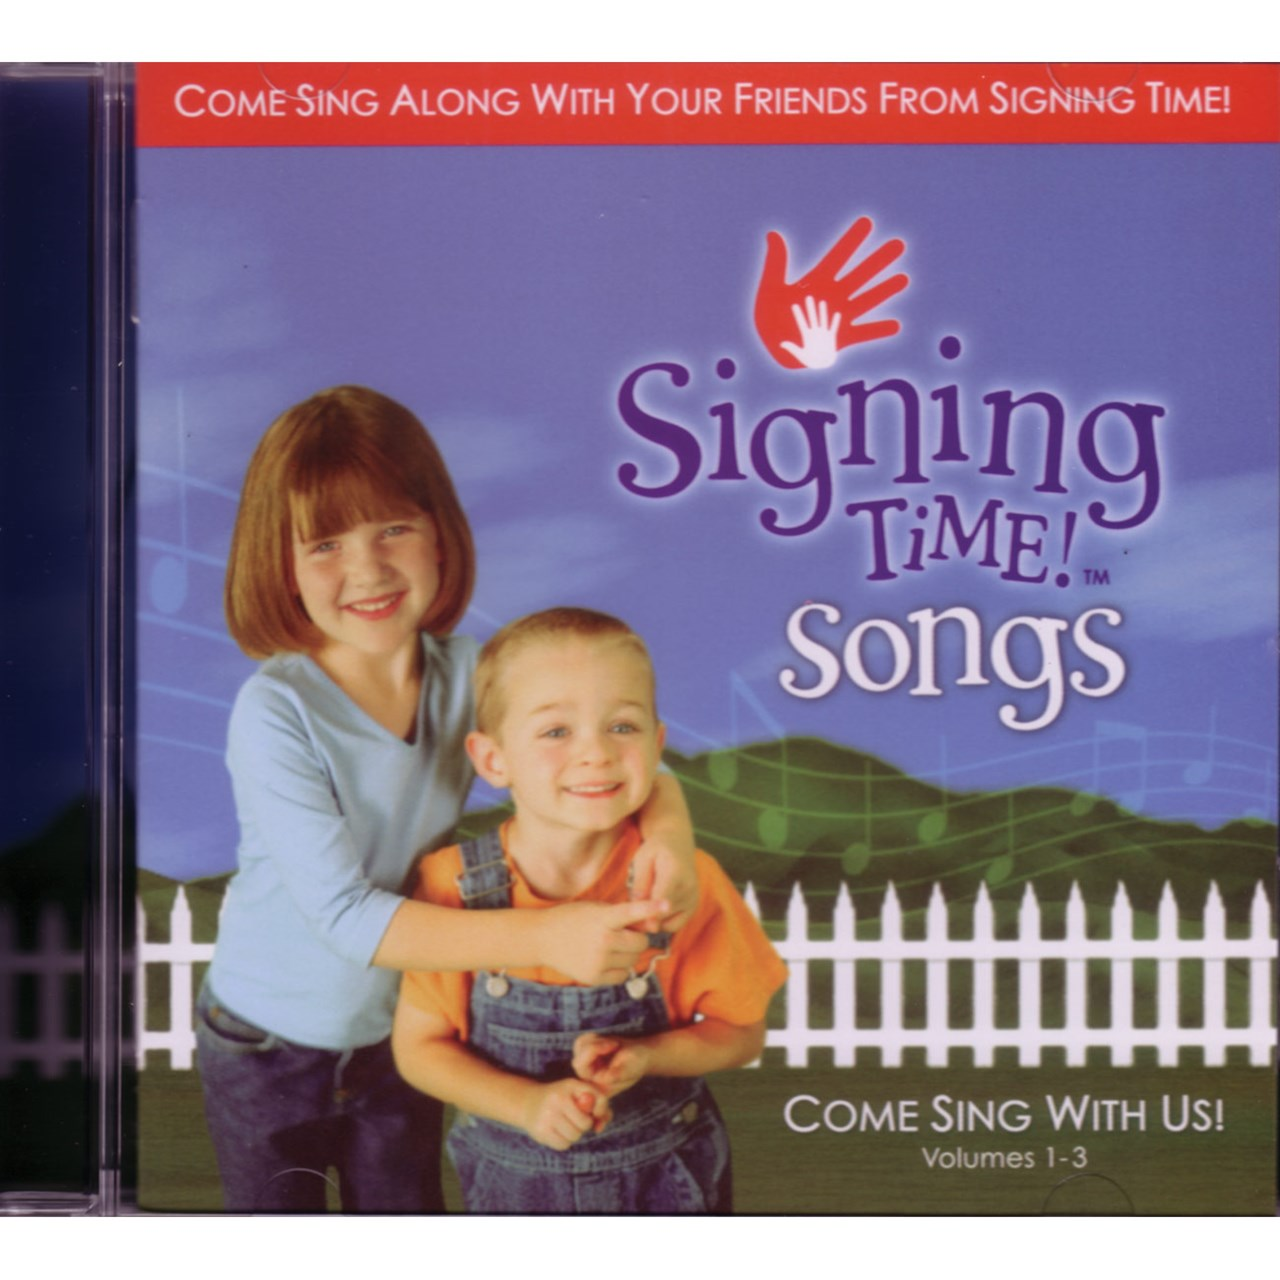 Signing Time Songs - Music CDs -Vol 1-3